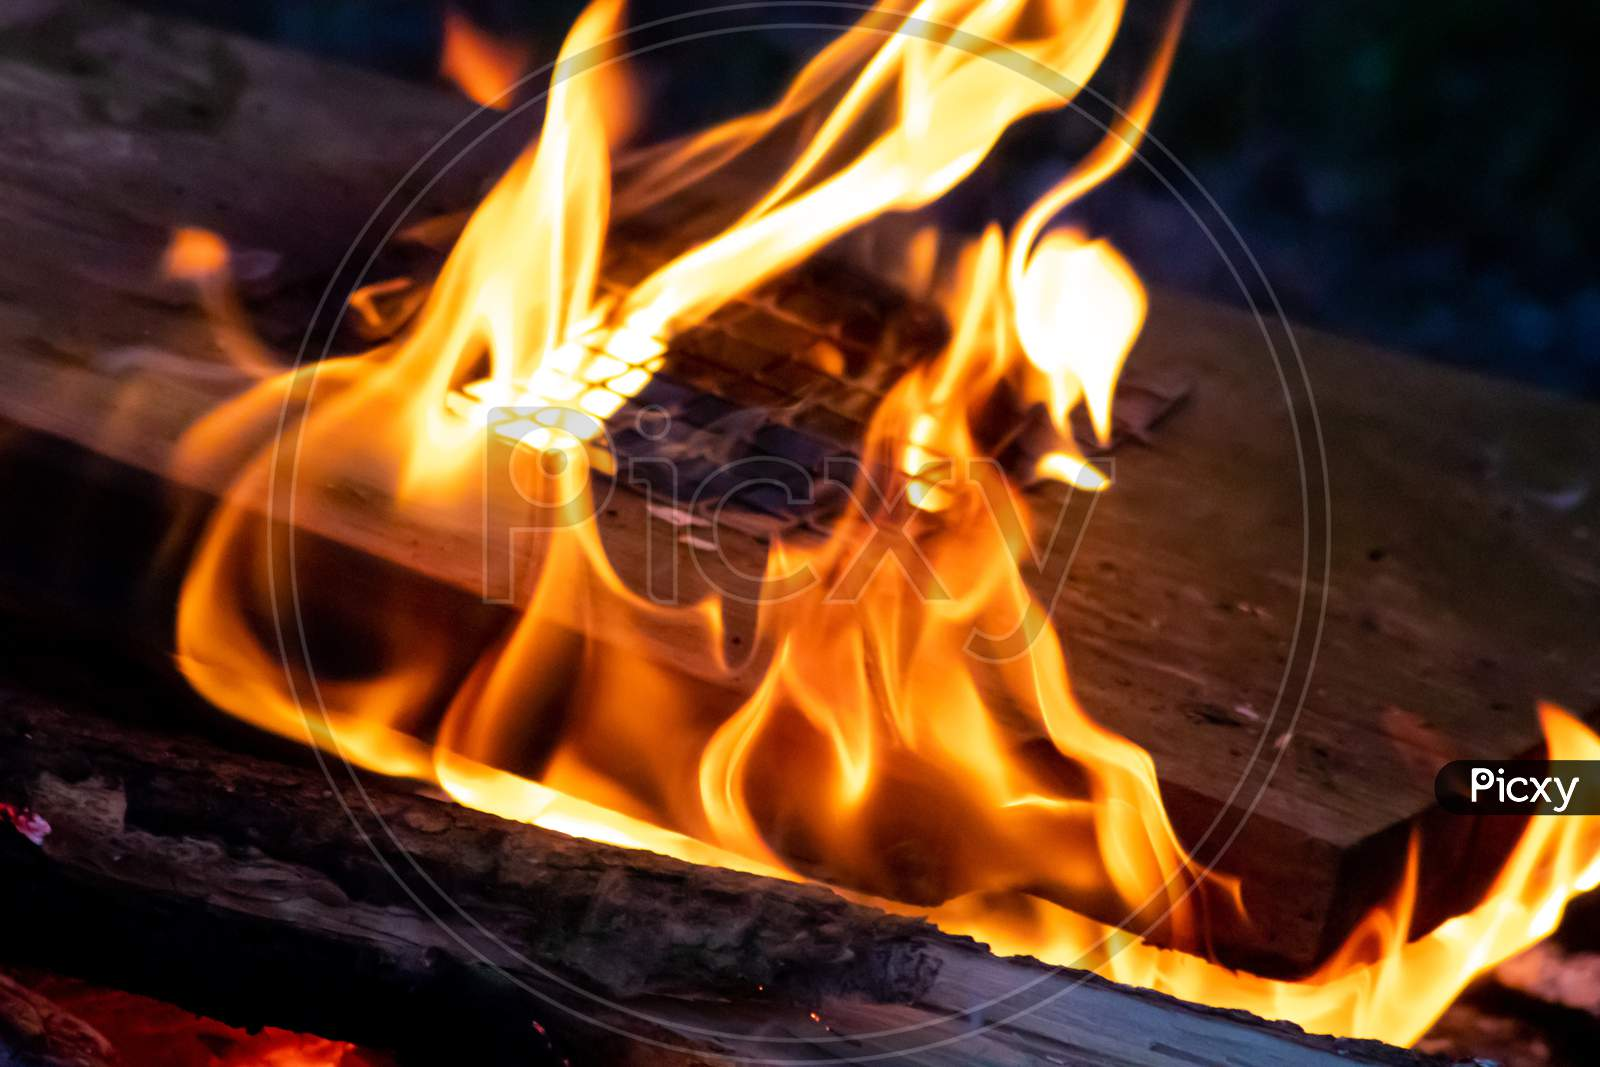 Shiny burning fire in the dark shows the romantic side of a campfire or bonfire, fire safety and the need of a fire insurance as well as survival adventures outdoor with the children and the family